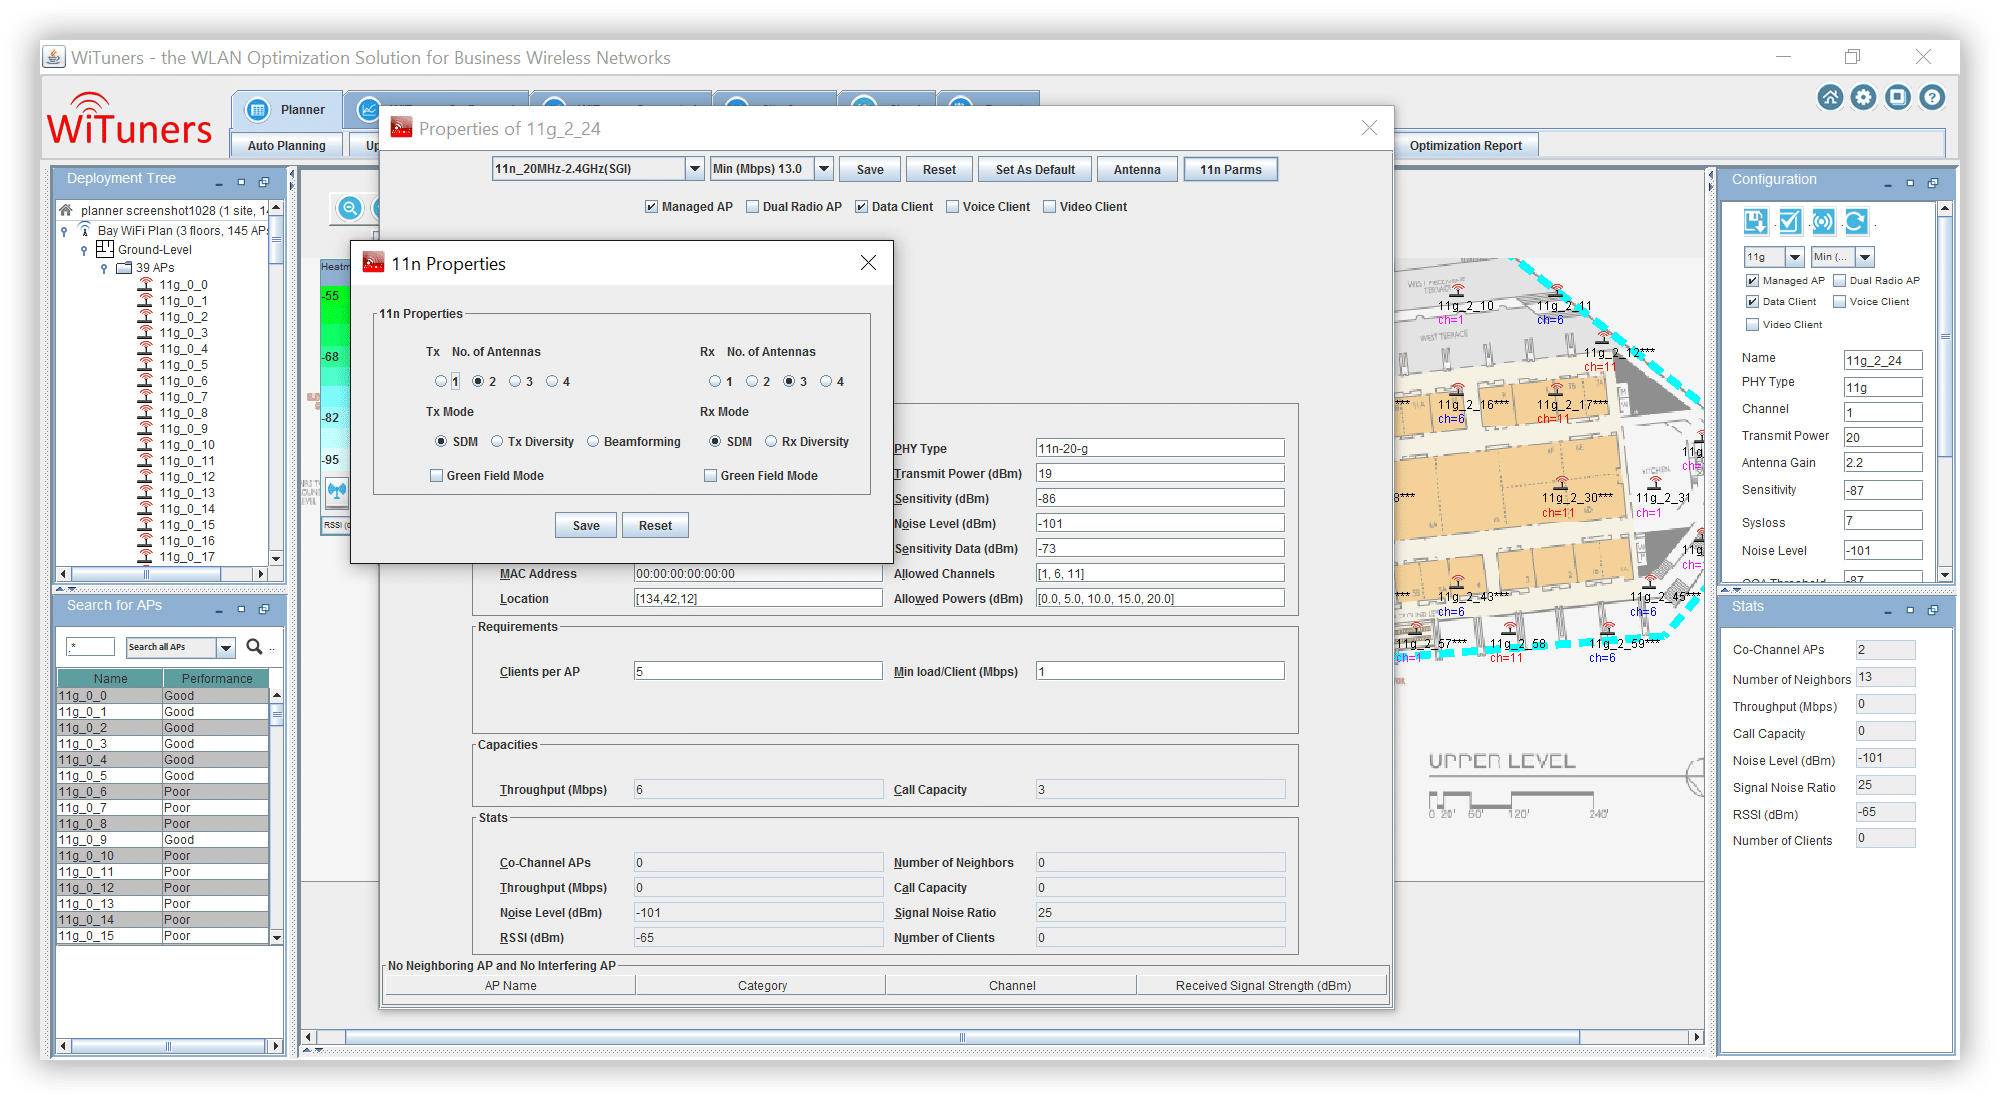 access point 802.11n properties in WiFi planning software